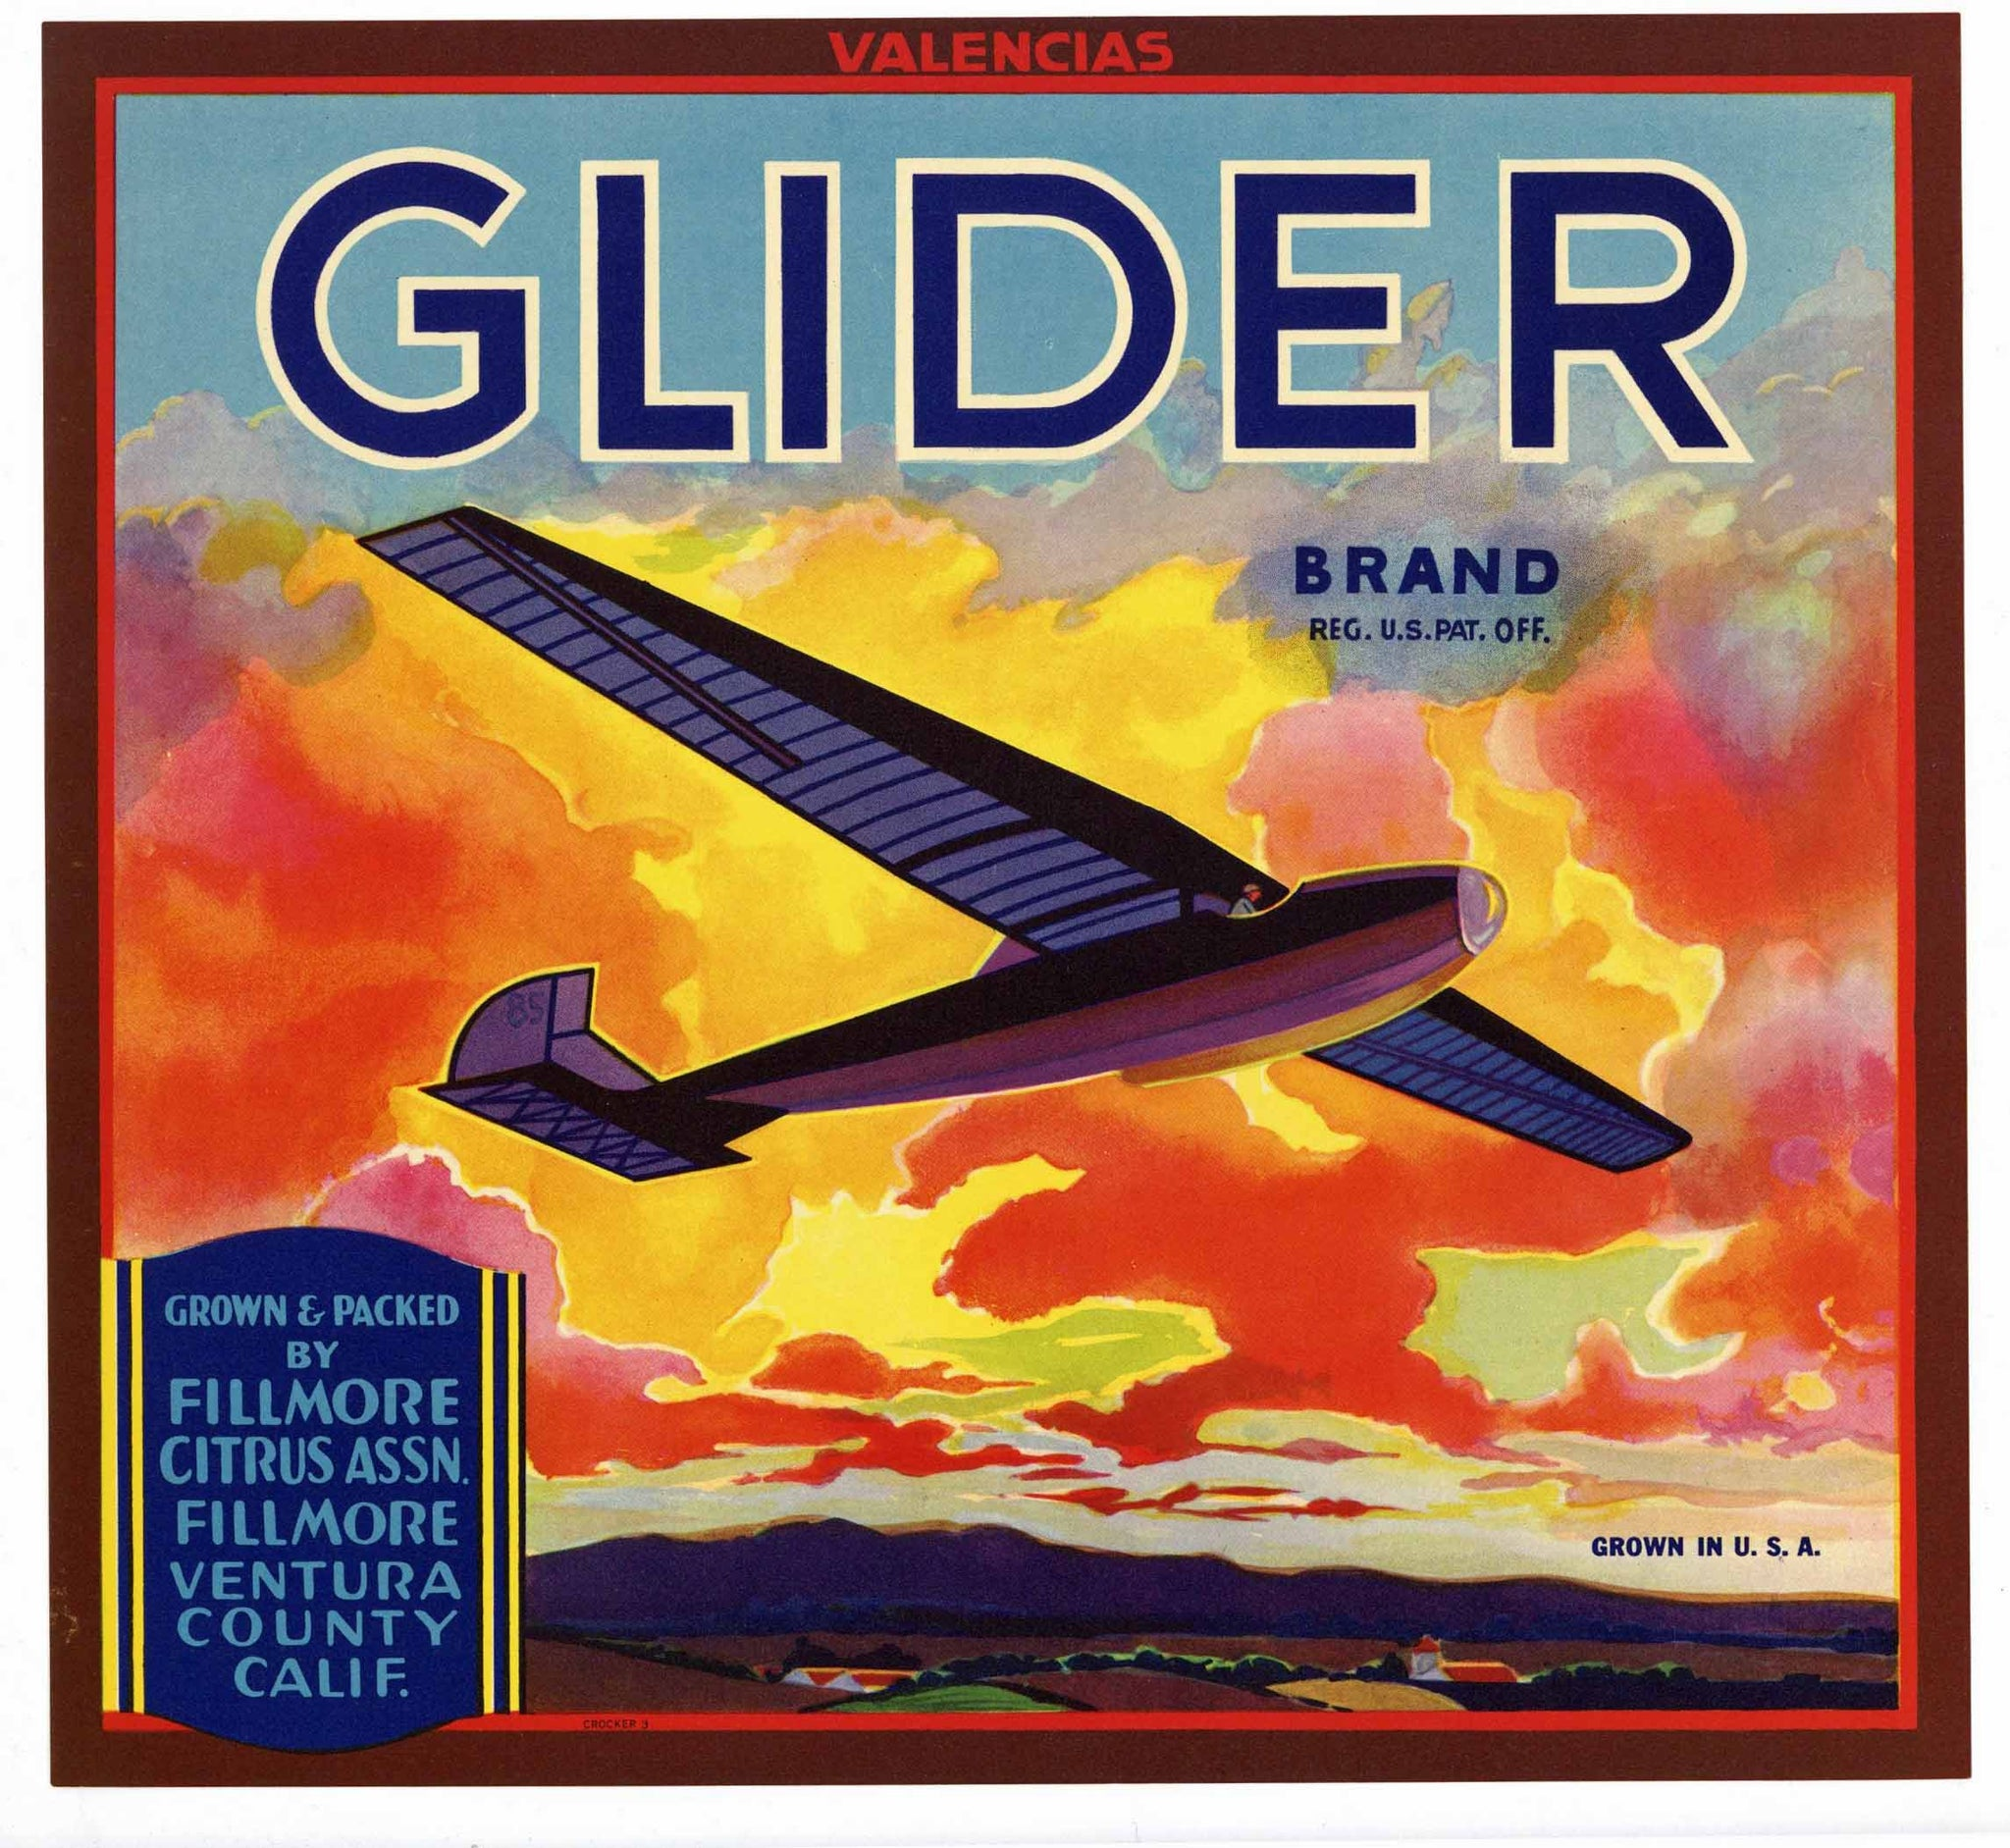 Glider Brand Vintage Fillmore Orange Crate Label, Valencias